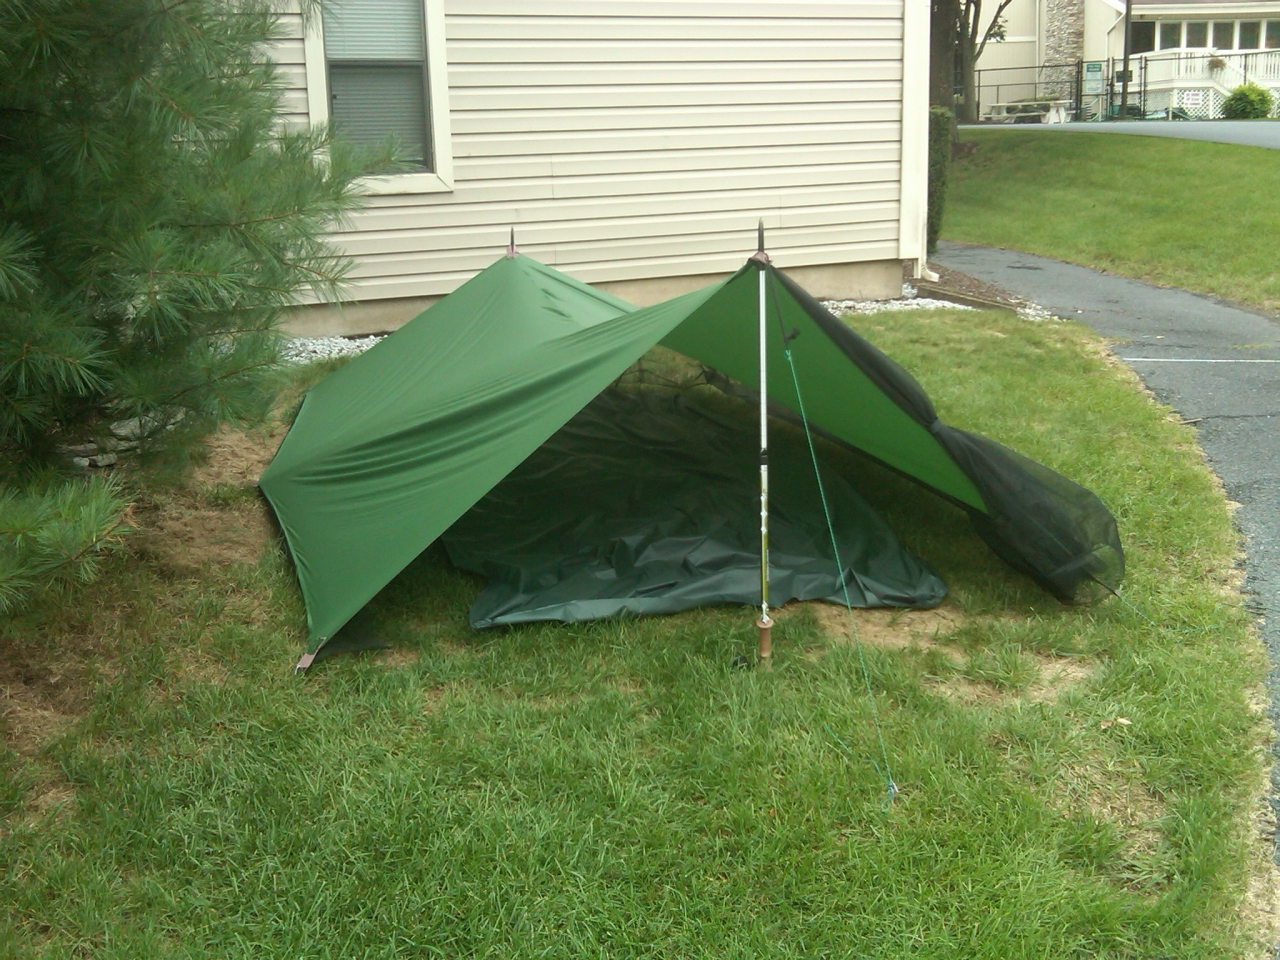 FS/T DIY Tarp Tent & FS/T: DIY Tarp Tent - Backpacking Light